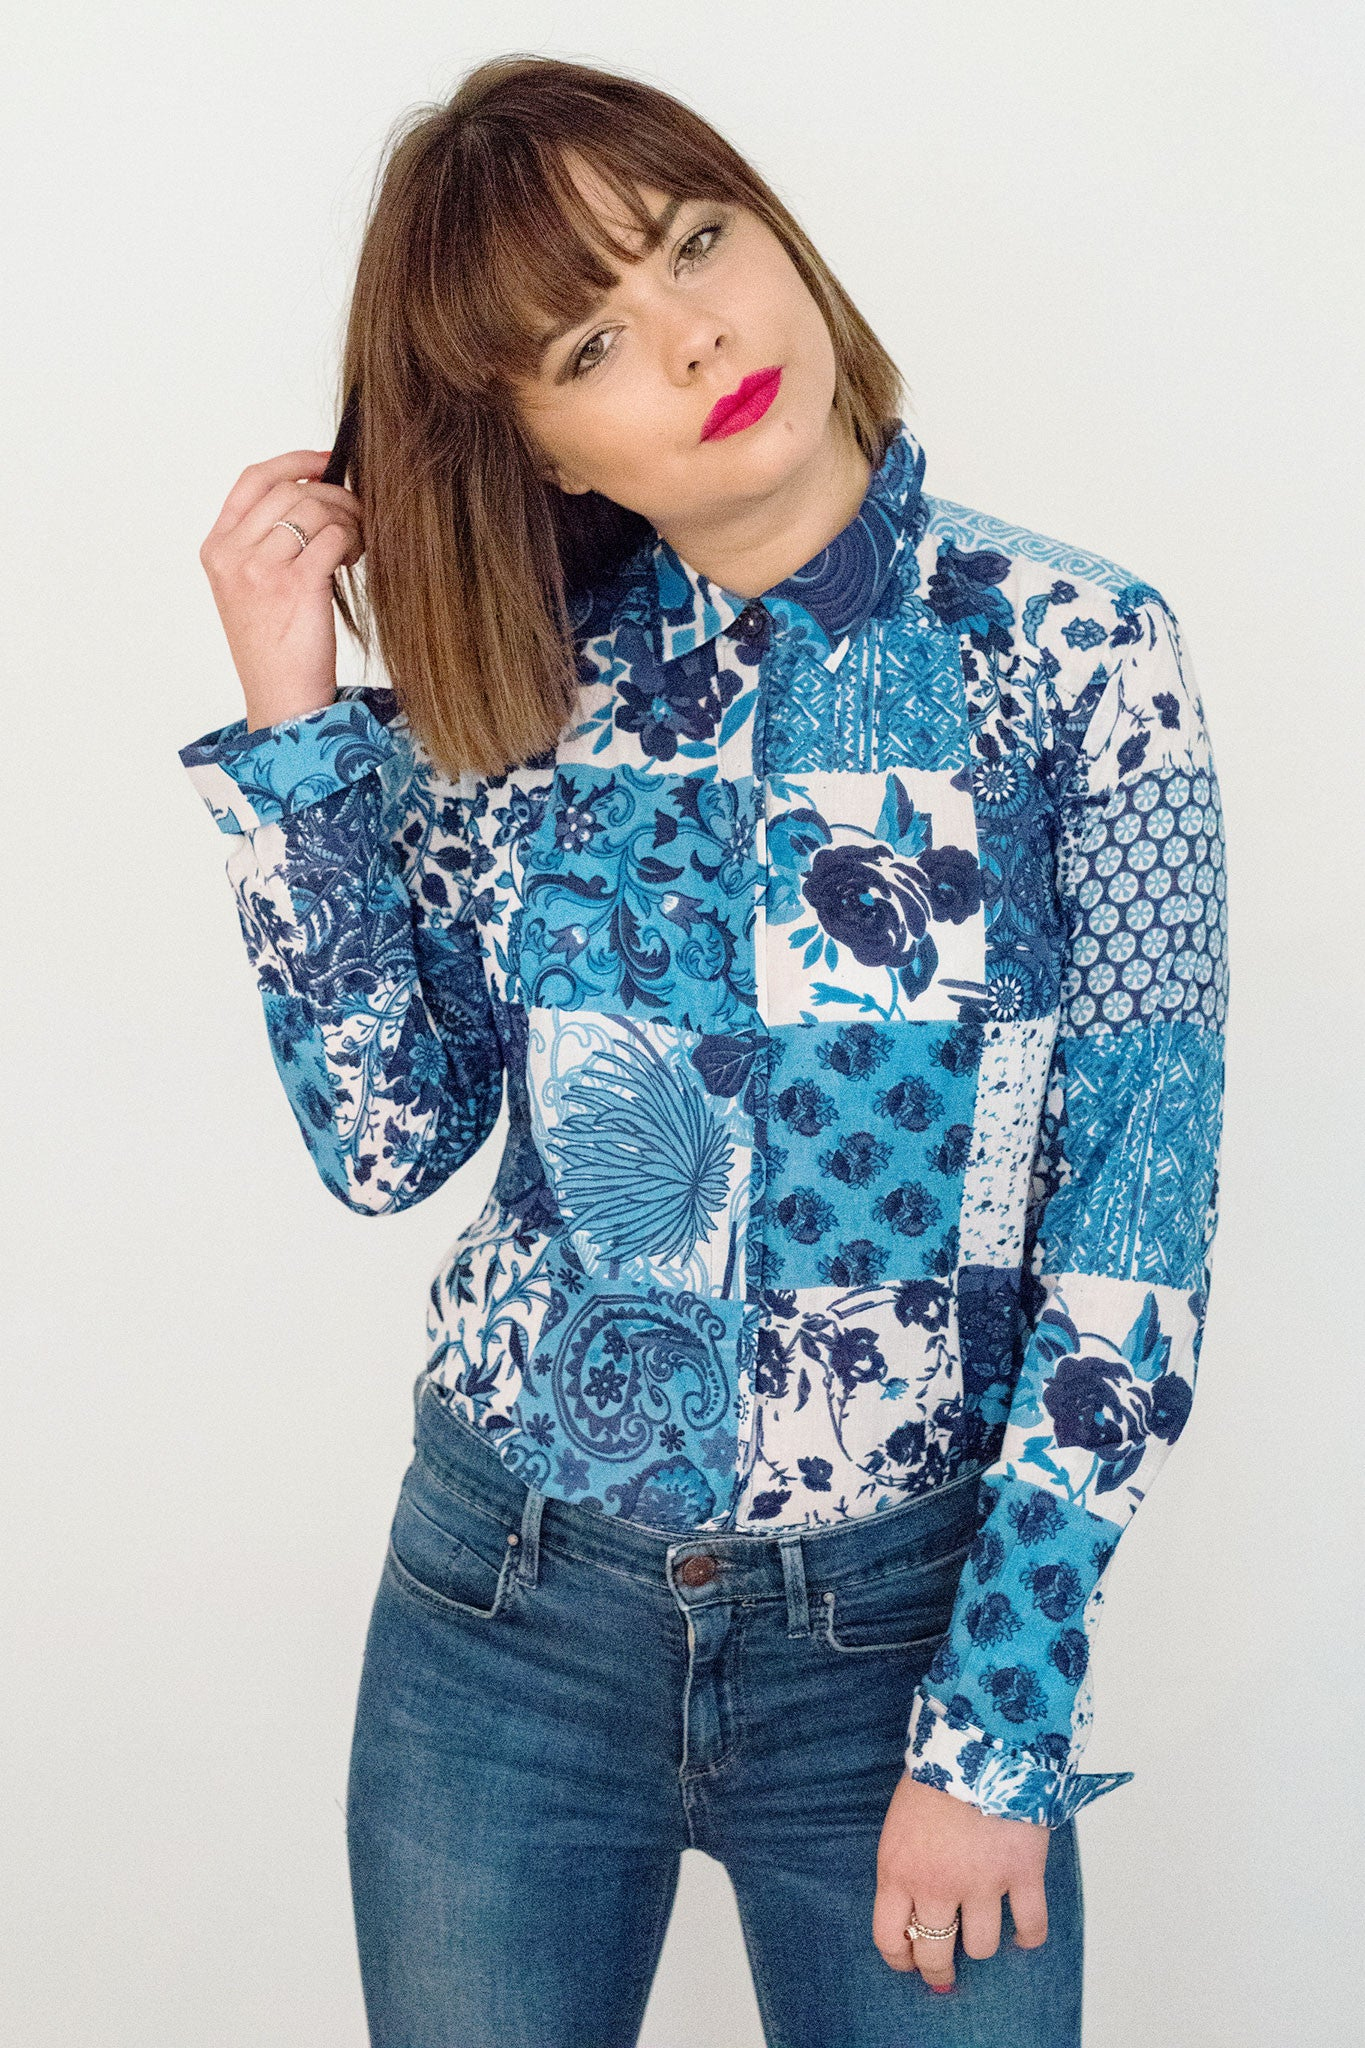 Sketch London Fashion Indigo blue flower patch print shirt long sleeves ethical sustainable style british design